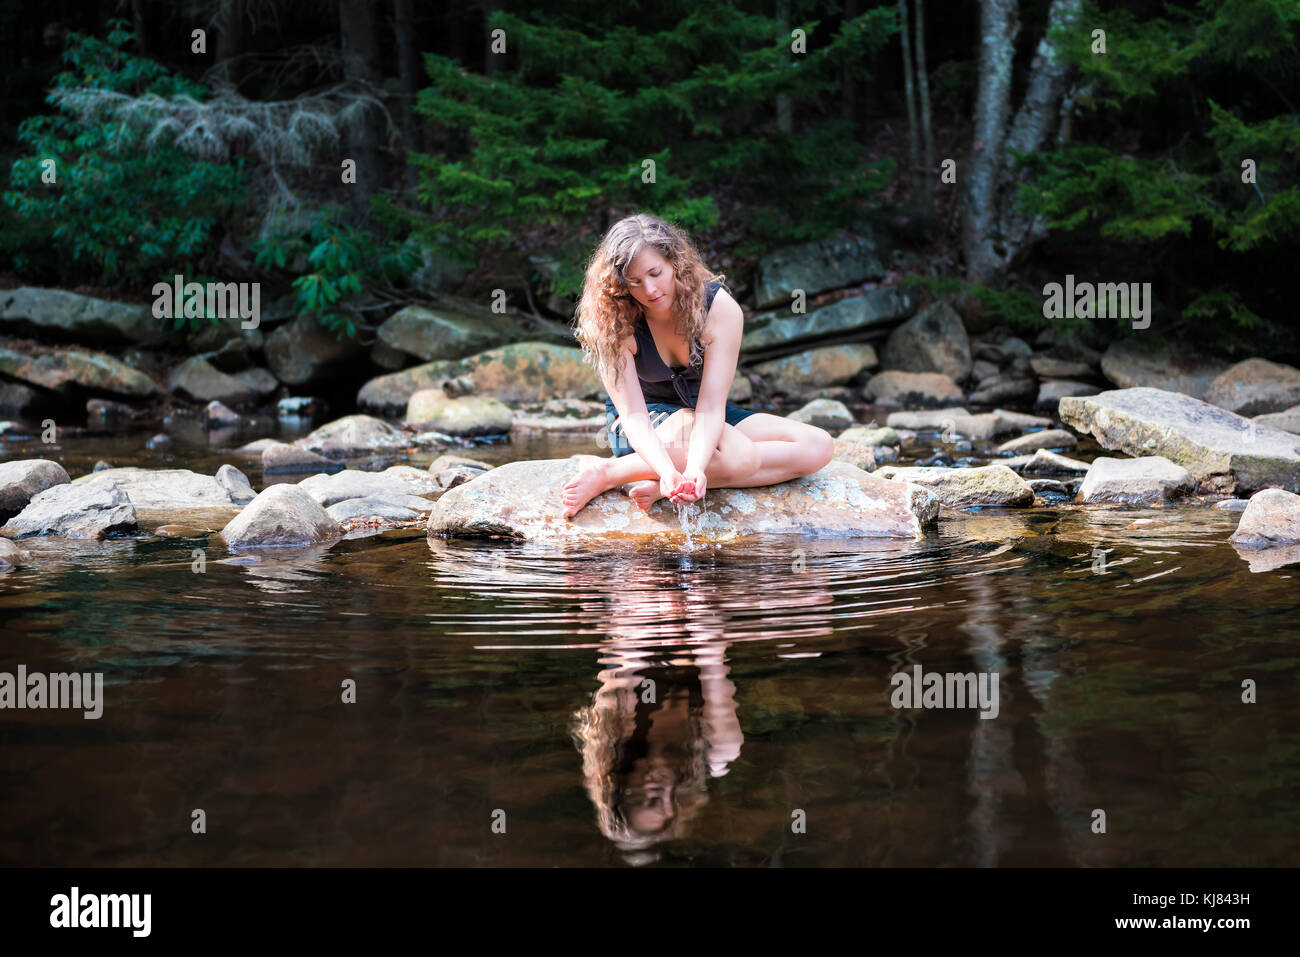 Young woman enjoying nature on peaceful, calm Red Creek river in Dolly Sods, West Virginia during sunny day with - Stock Image